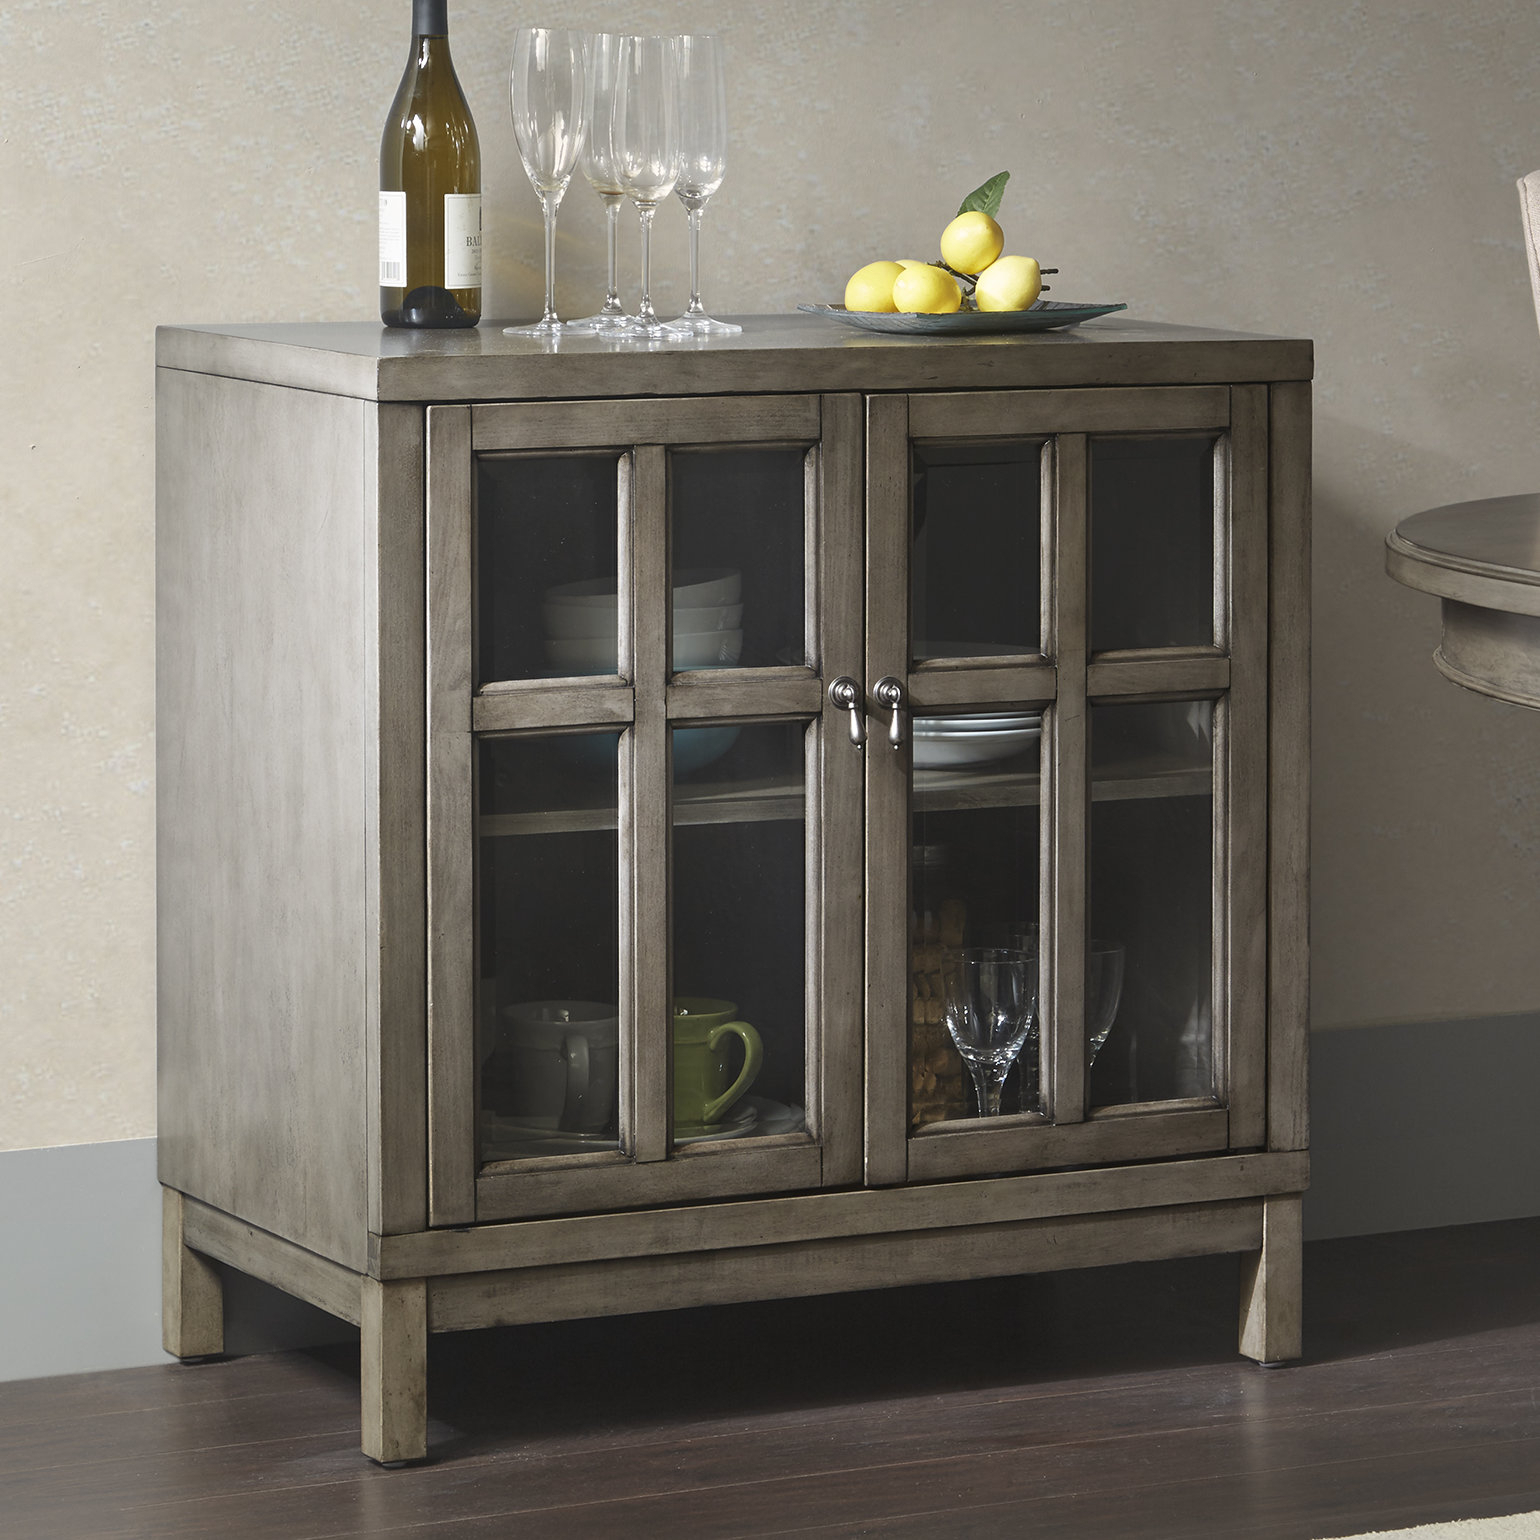 Inspiration about Dark Wood Credenza | Wayfair Pertaining To Best And Newest Candide Wood Credenzas (#19 of 20)